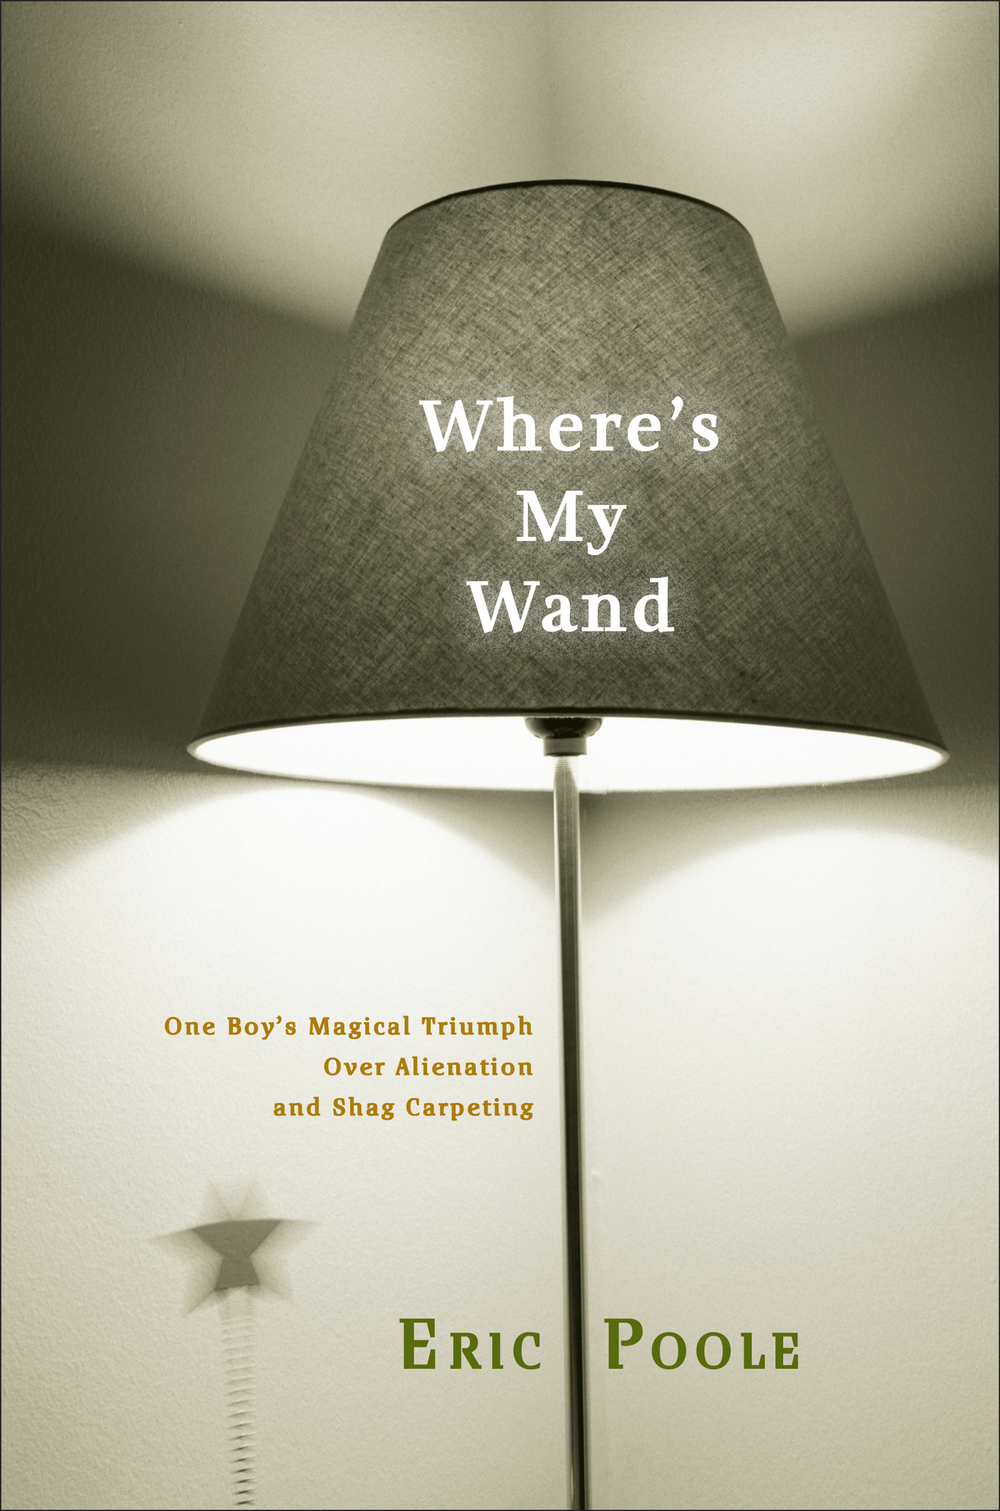 WHERES-MY-WAND-comp3-ss6.jpg